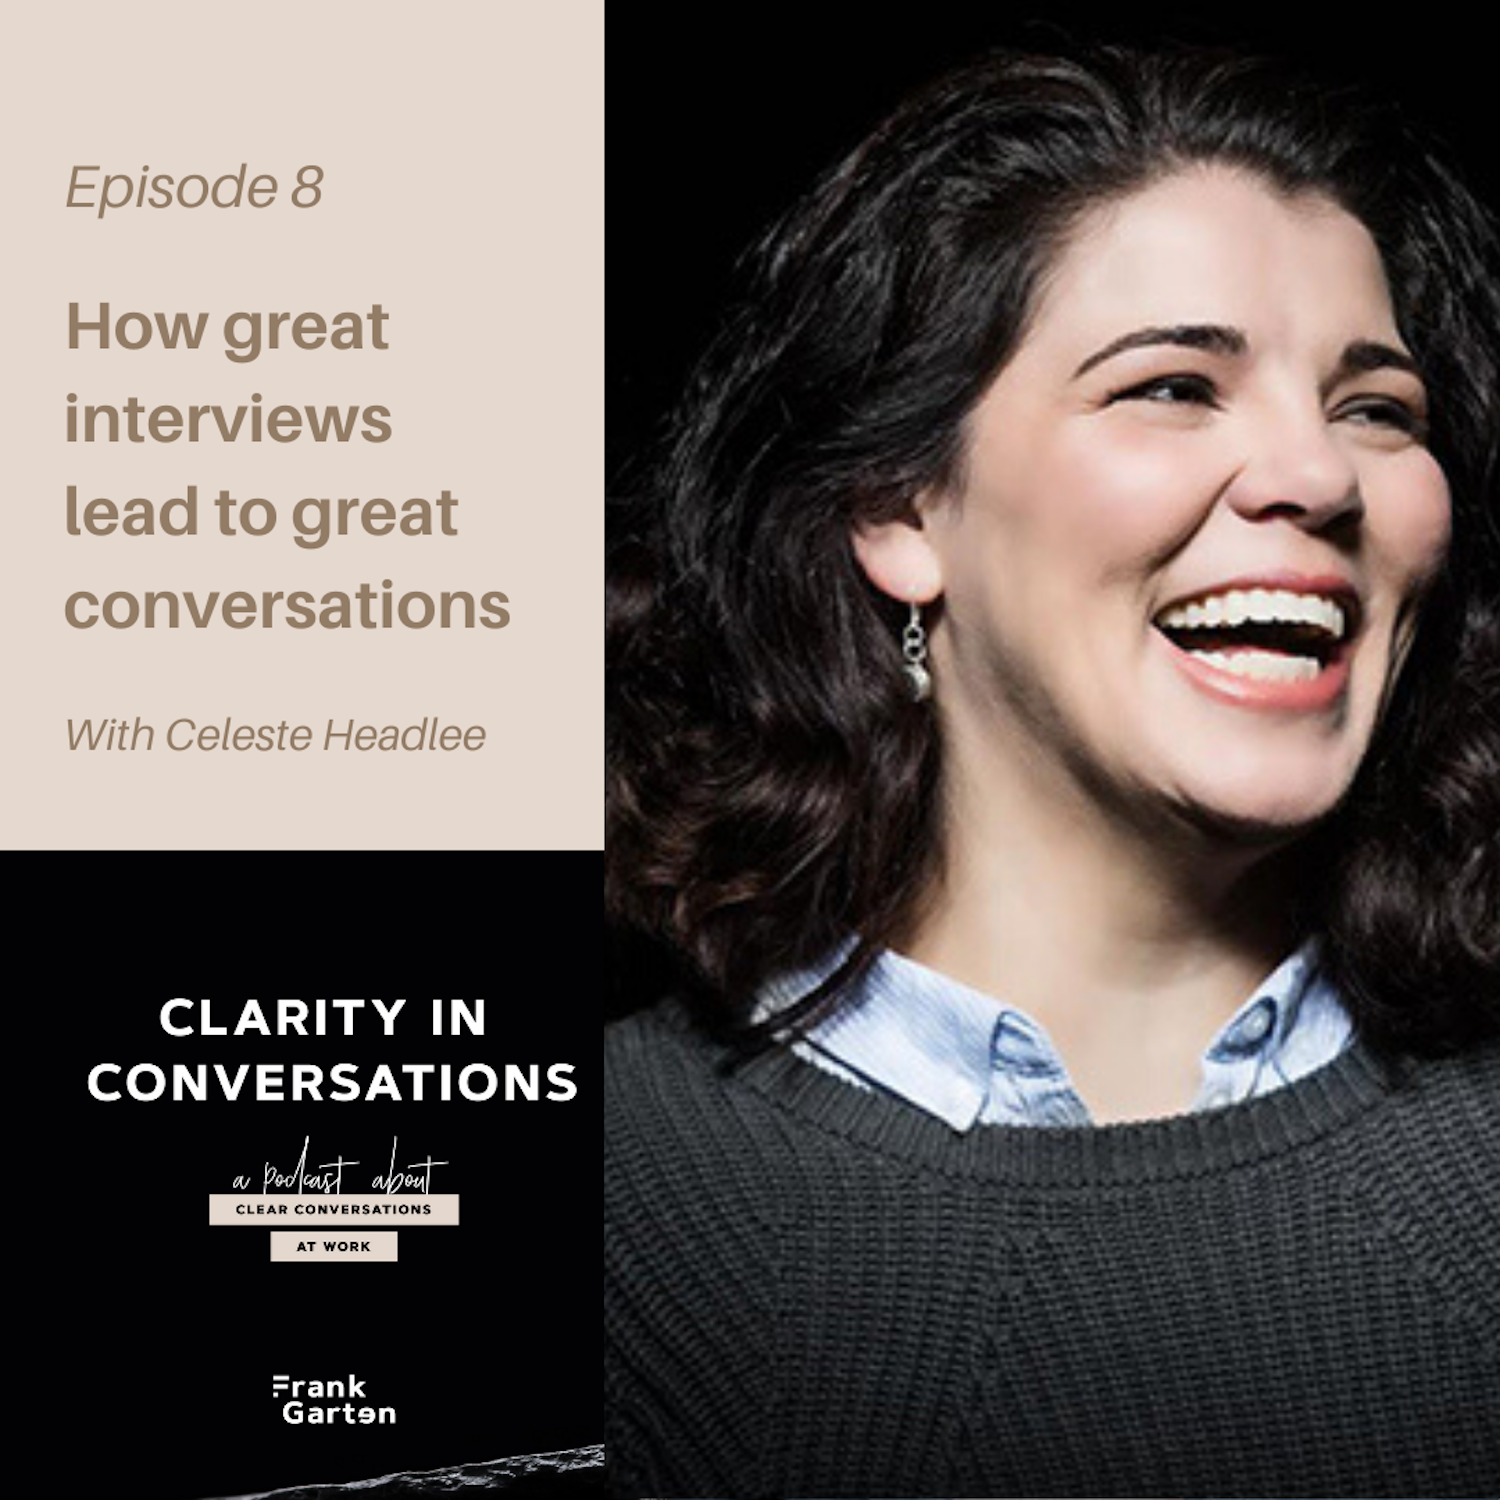 How great interviews lead to great conversations